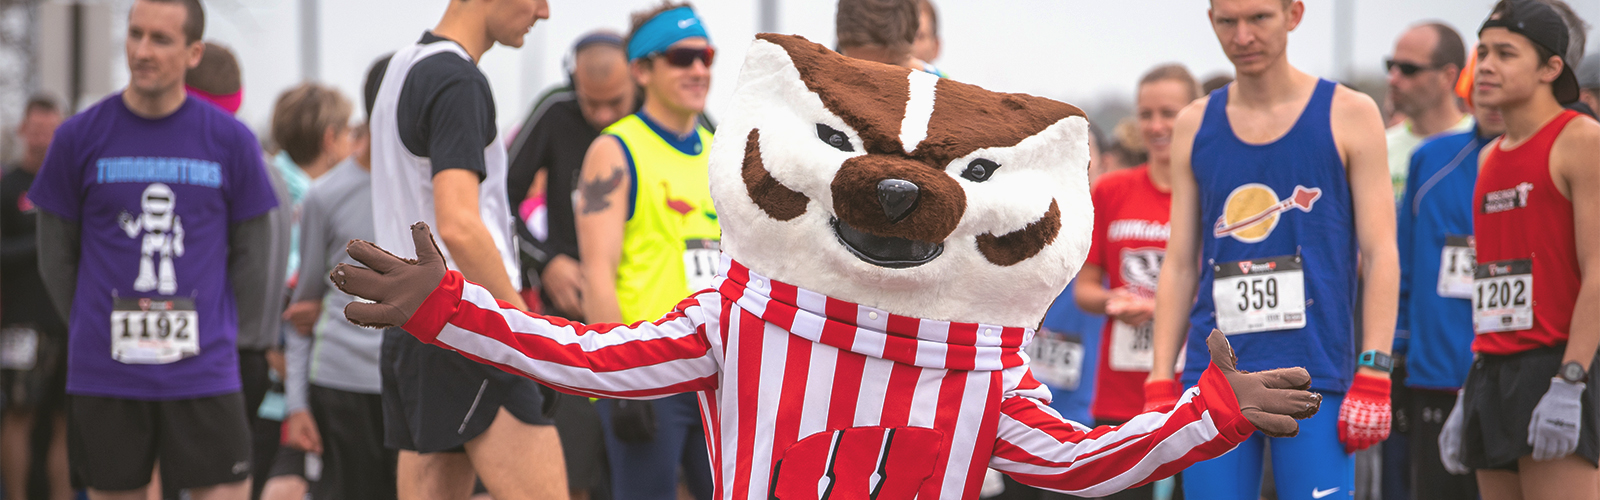 Bucky Badger with arms spread wide in front of a crowd of people wearing running clothes.